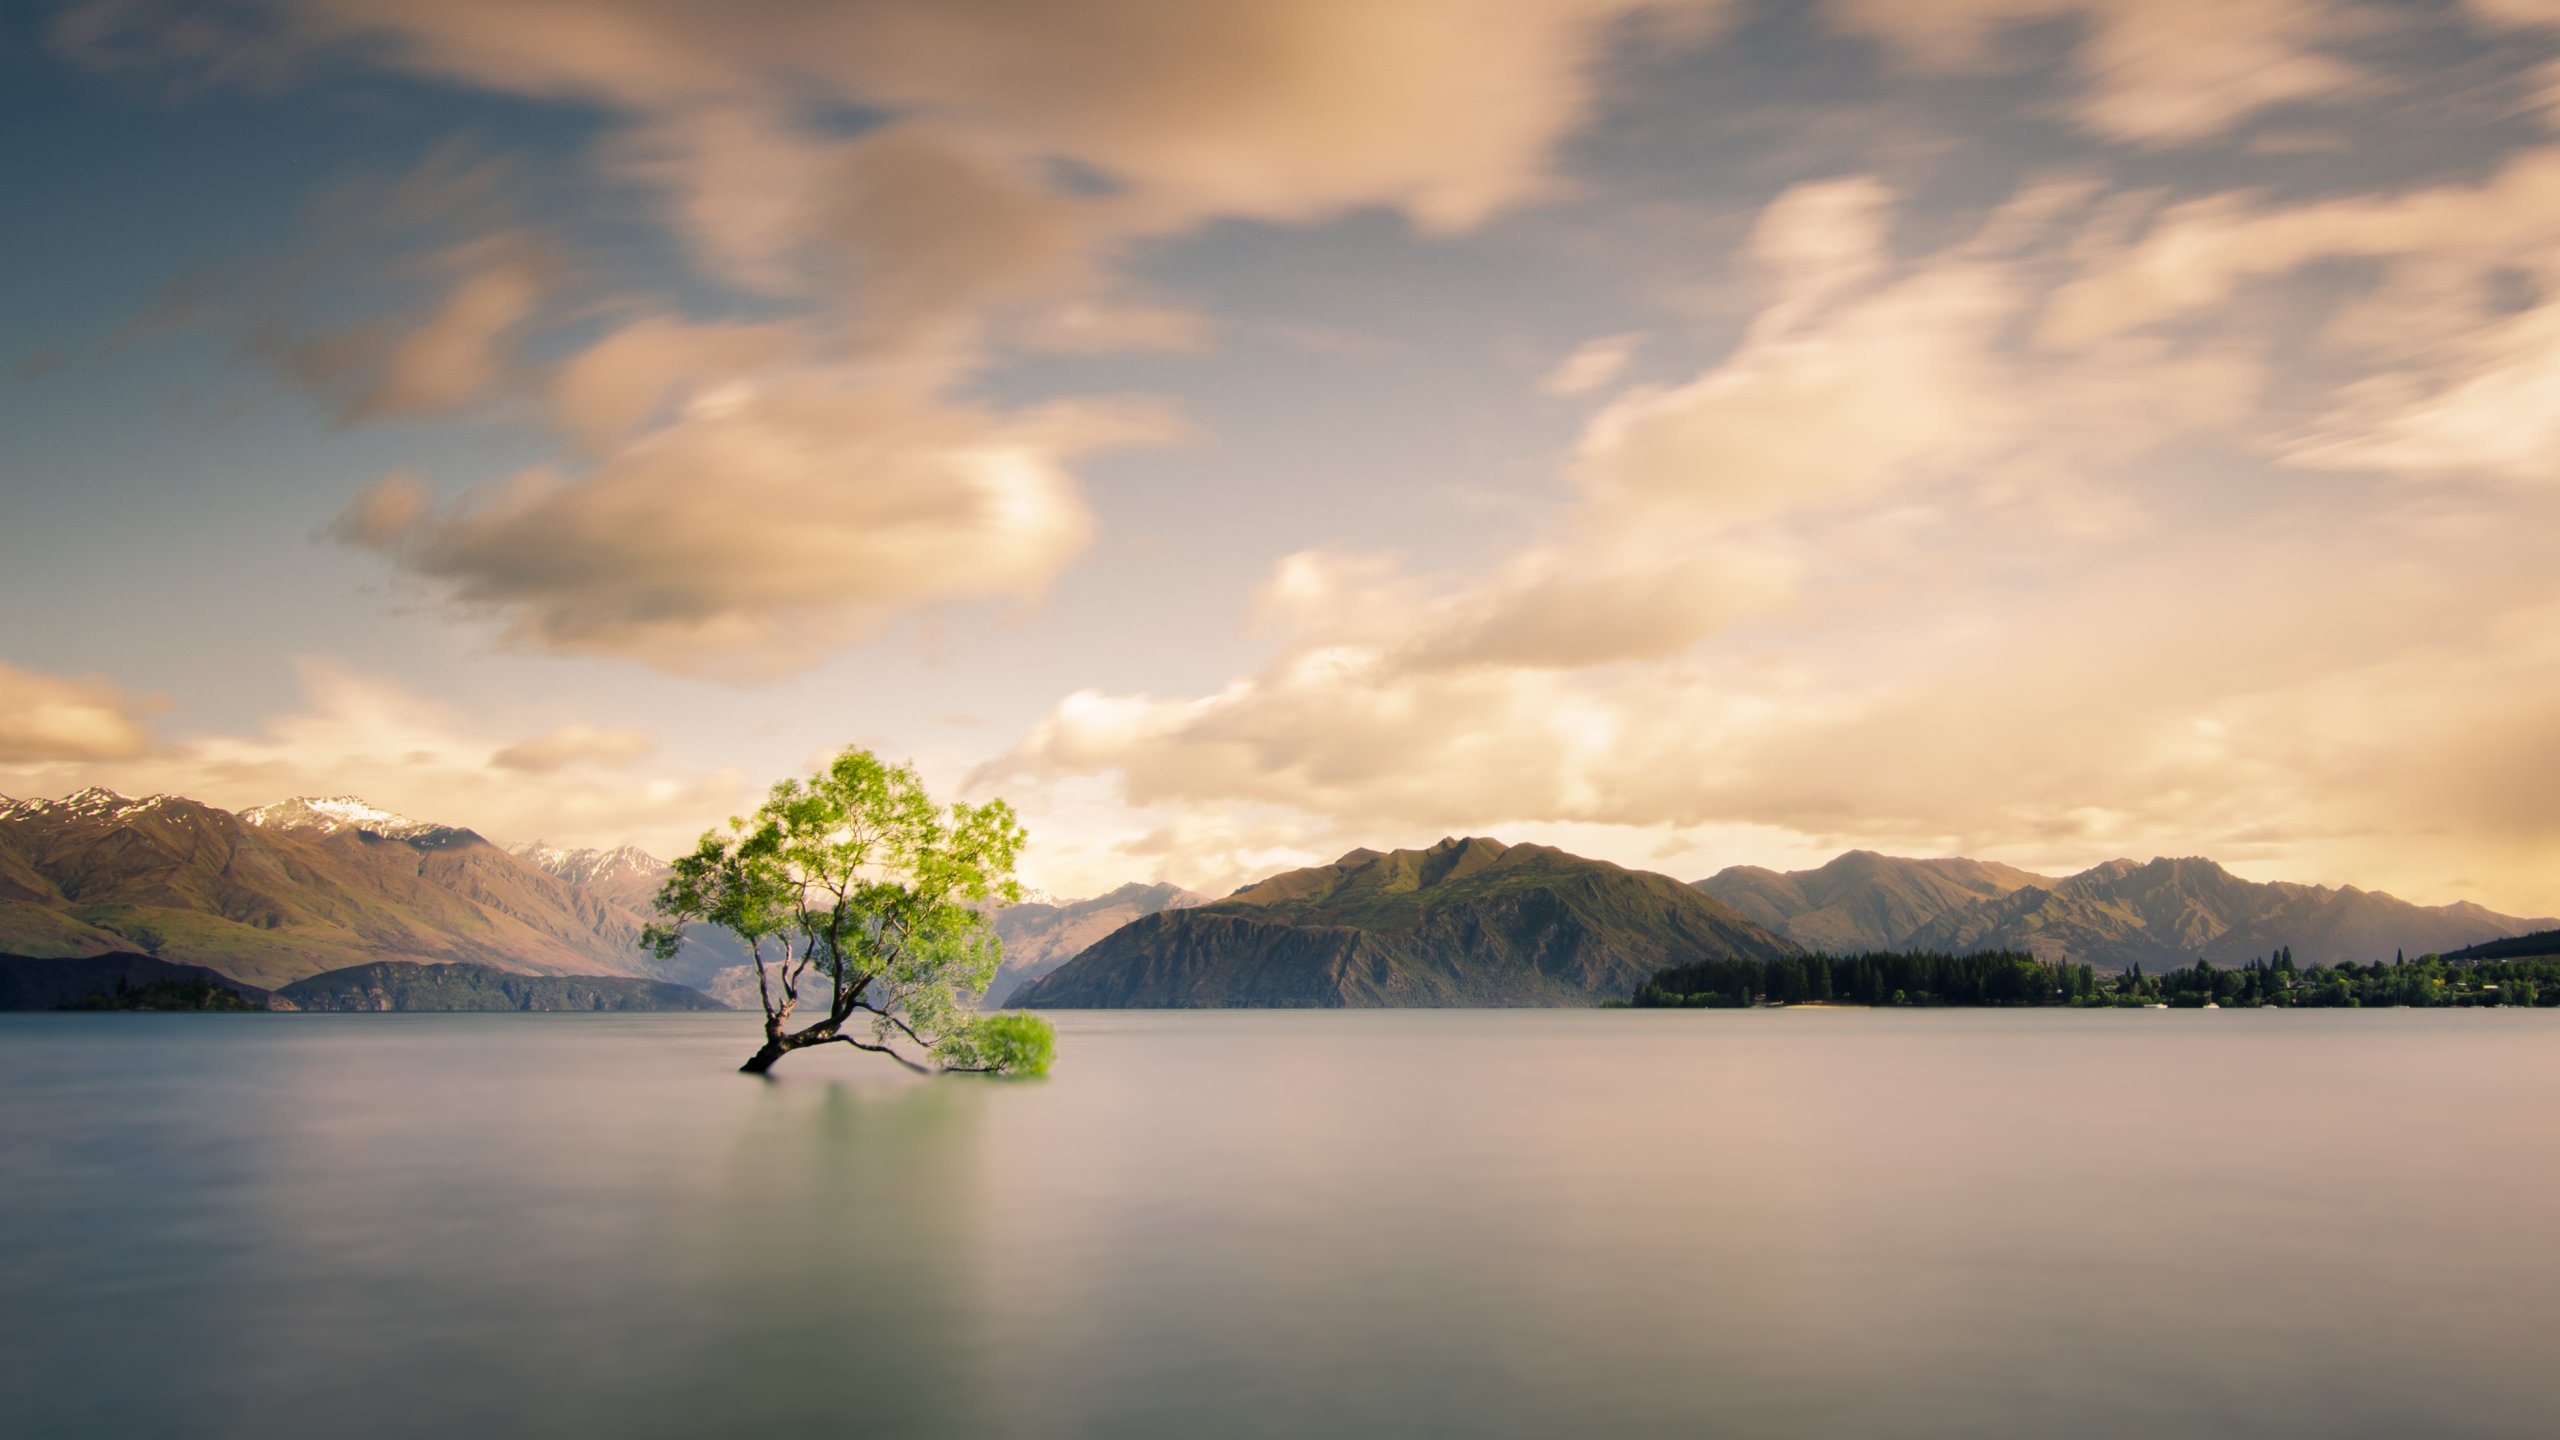 S4 Wallpaper Hd Lone Tree Of Lake Wanaka New Zealand Hd Wallpaper